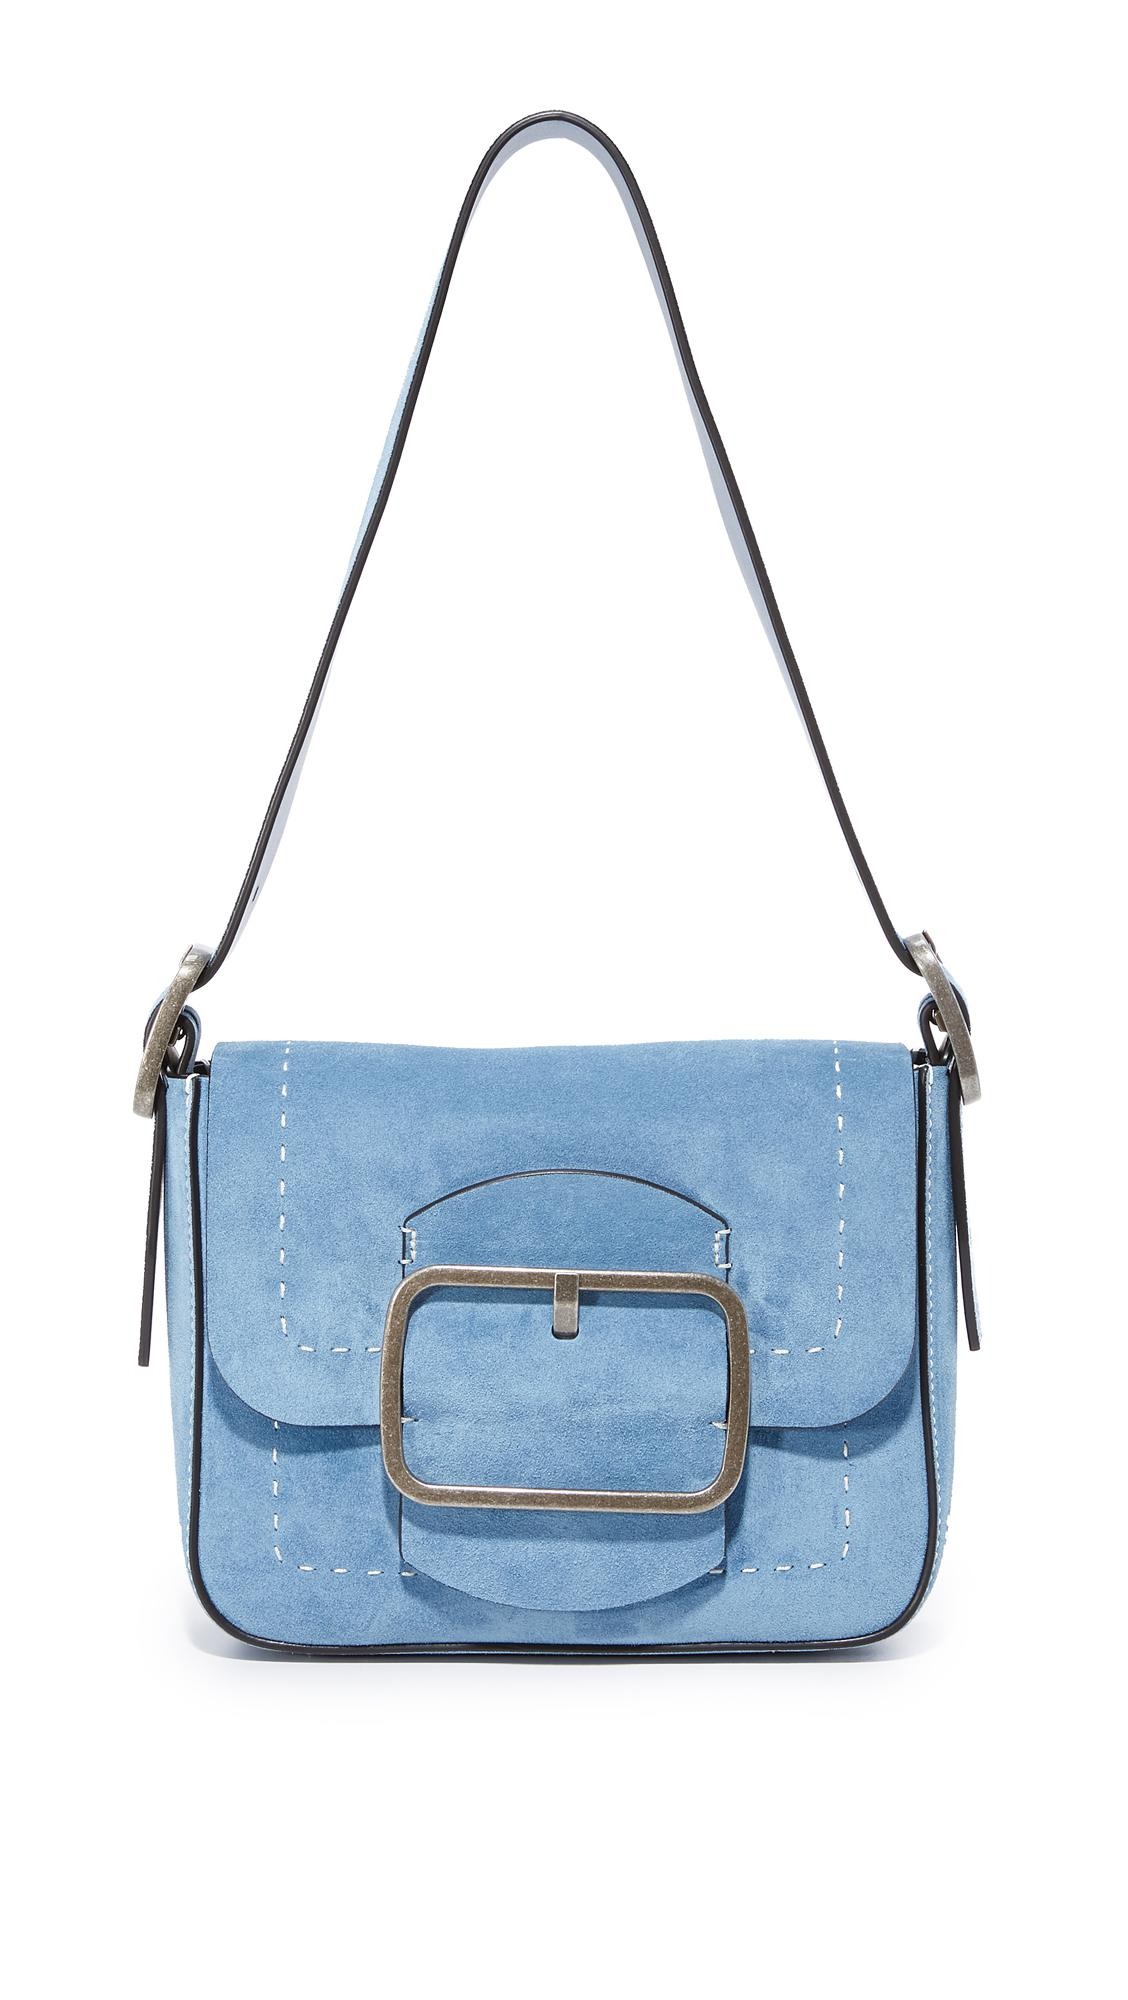 723c8ad3d06e Tory Burch Sawyer Small Shoulder Bag in Blue - Lyst